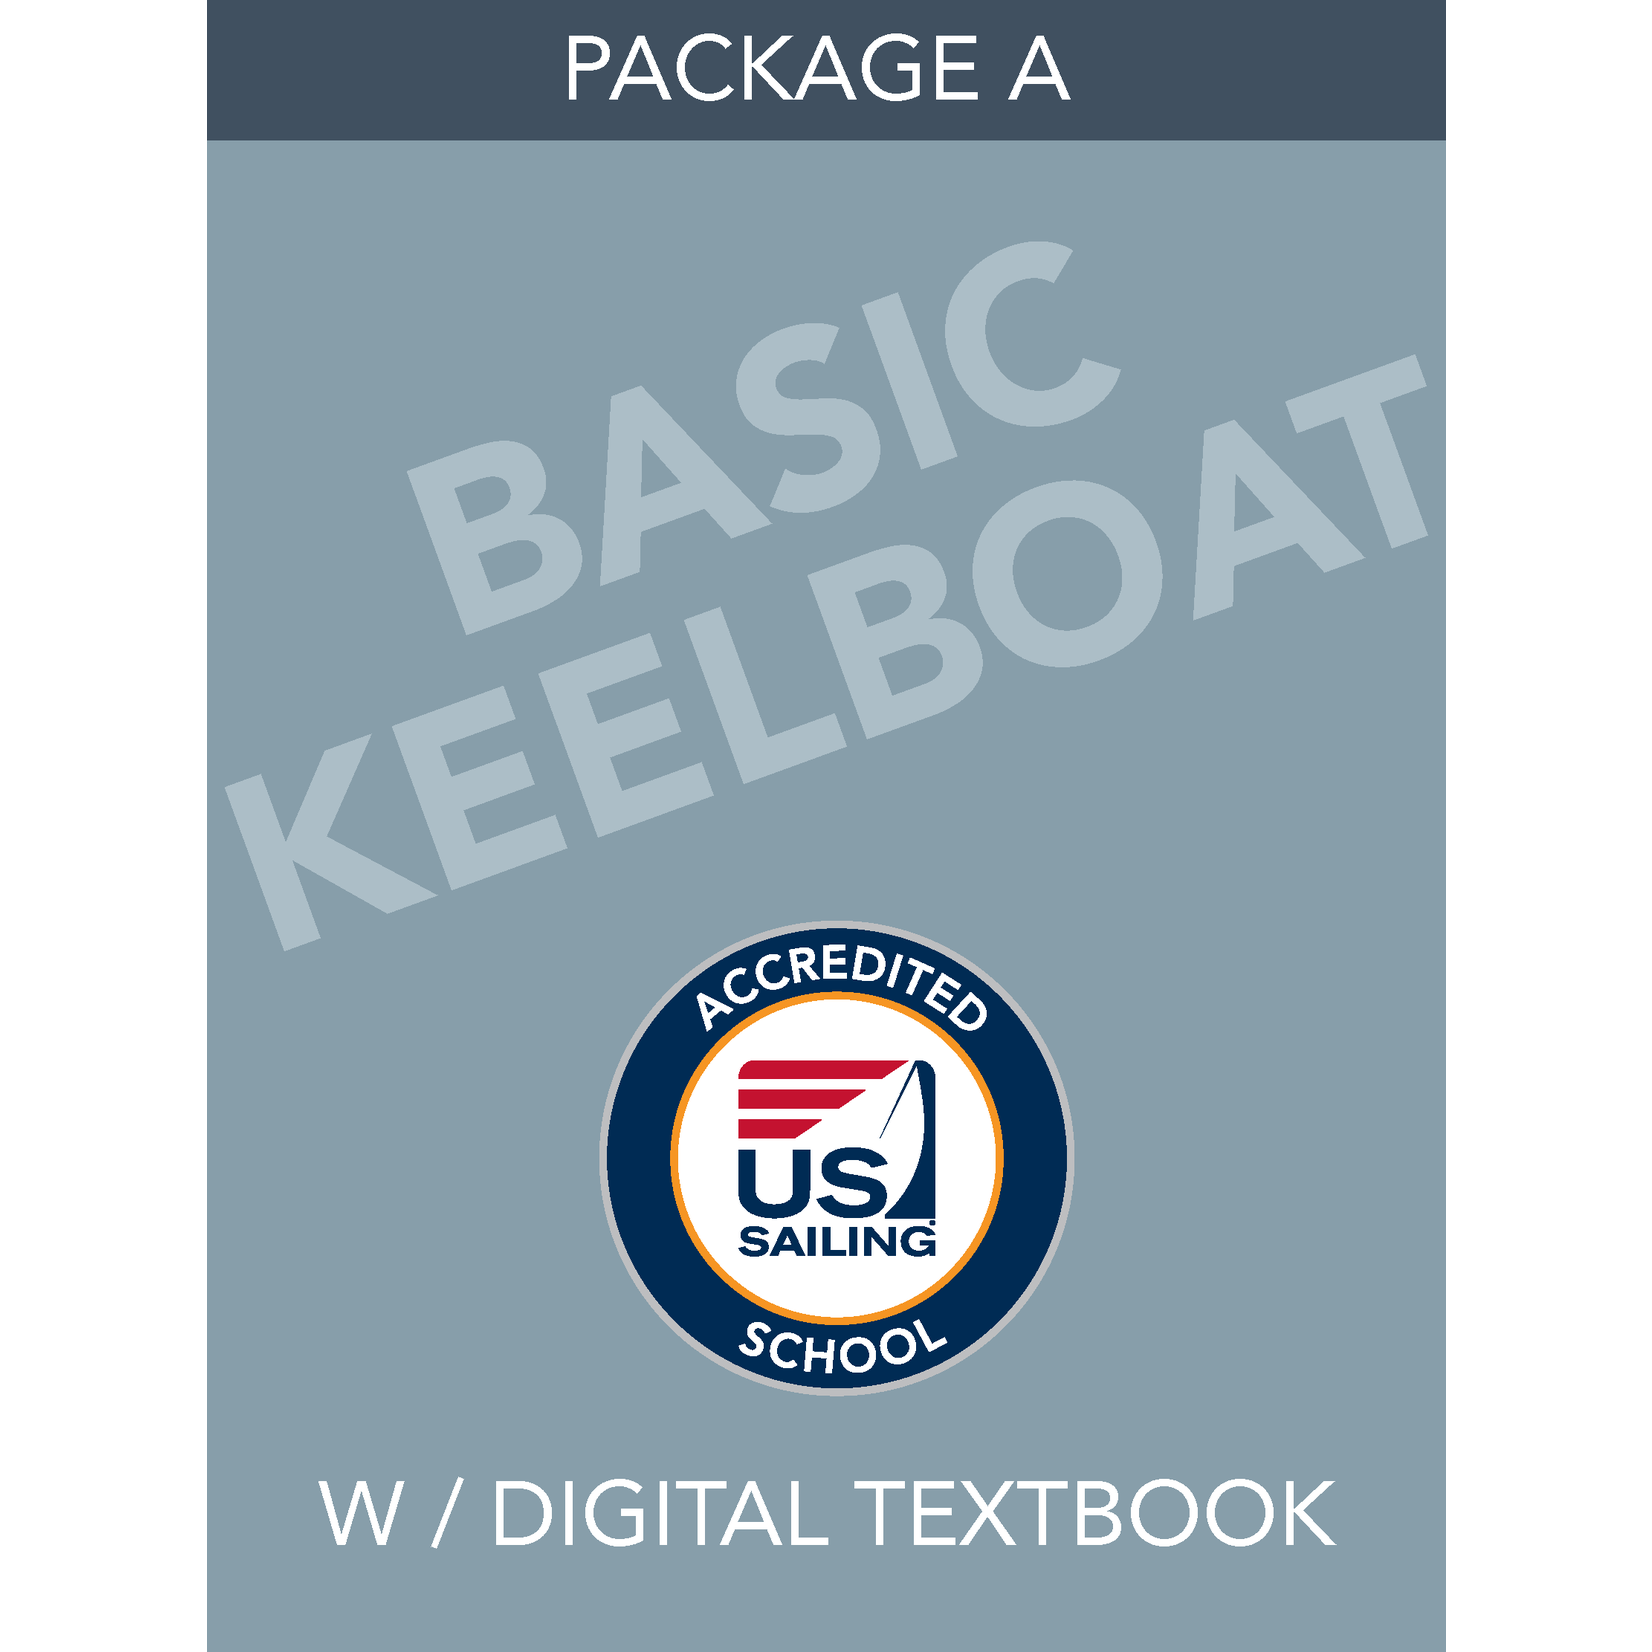 Package A - Basic Keelboat with Digital Textbook